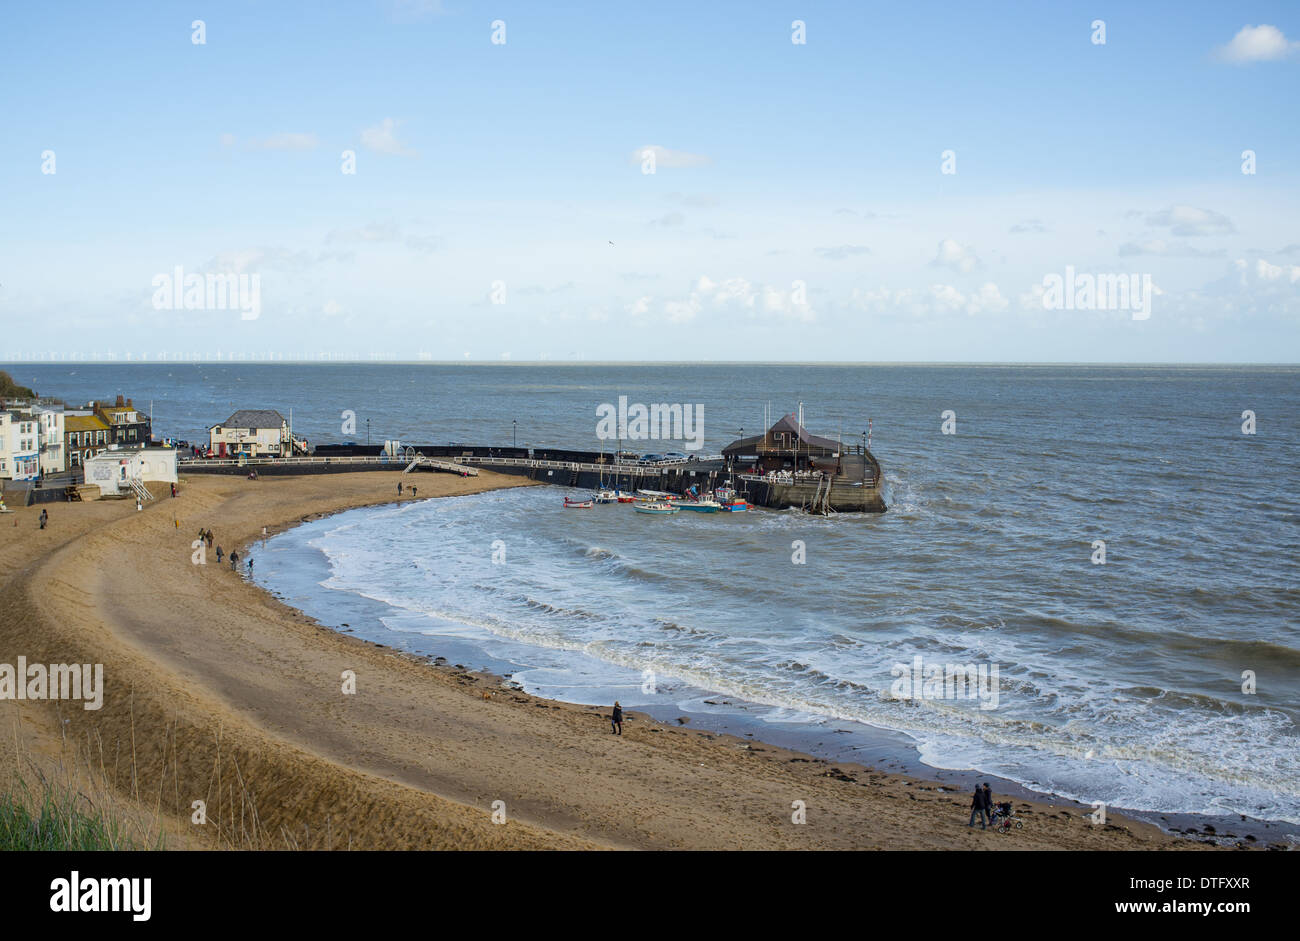 The beach at Broadstairs, Kent, United Kingdom - Stock Image